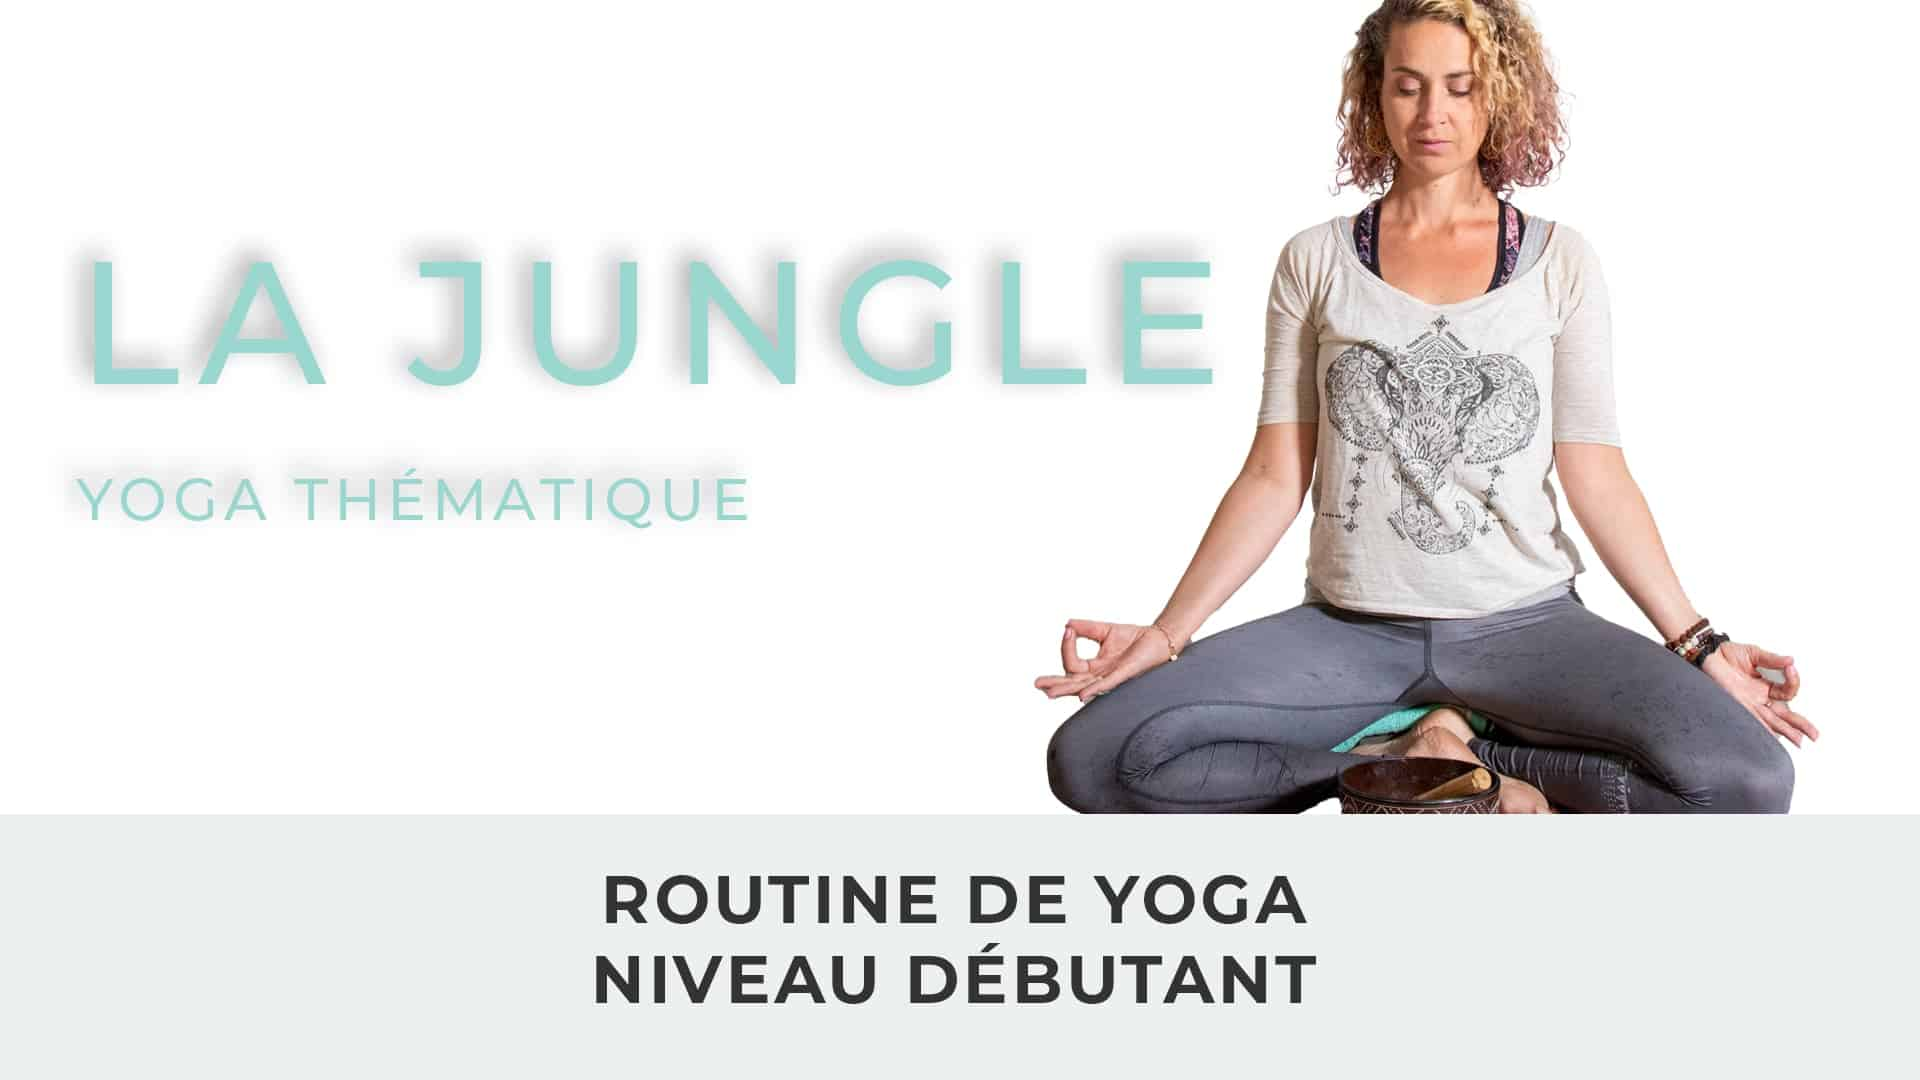 Carole Karuna & Alysée // Yoga // La Jungle